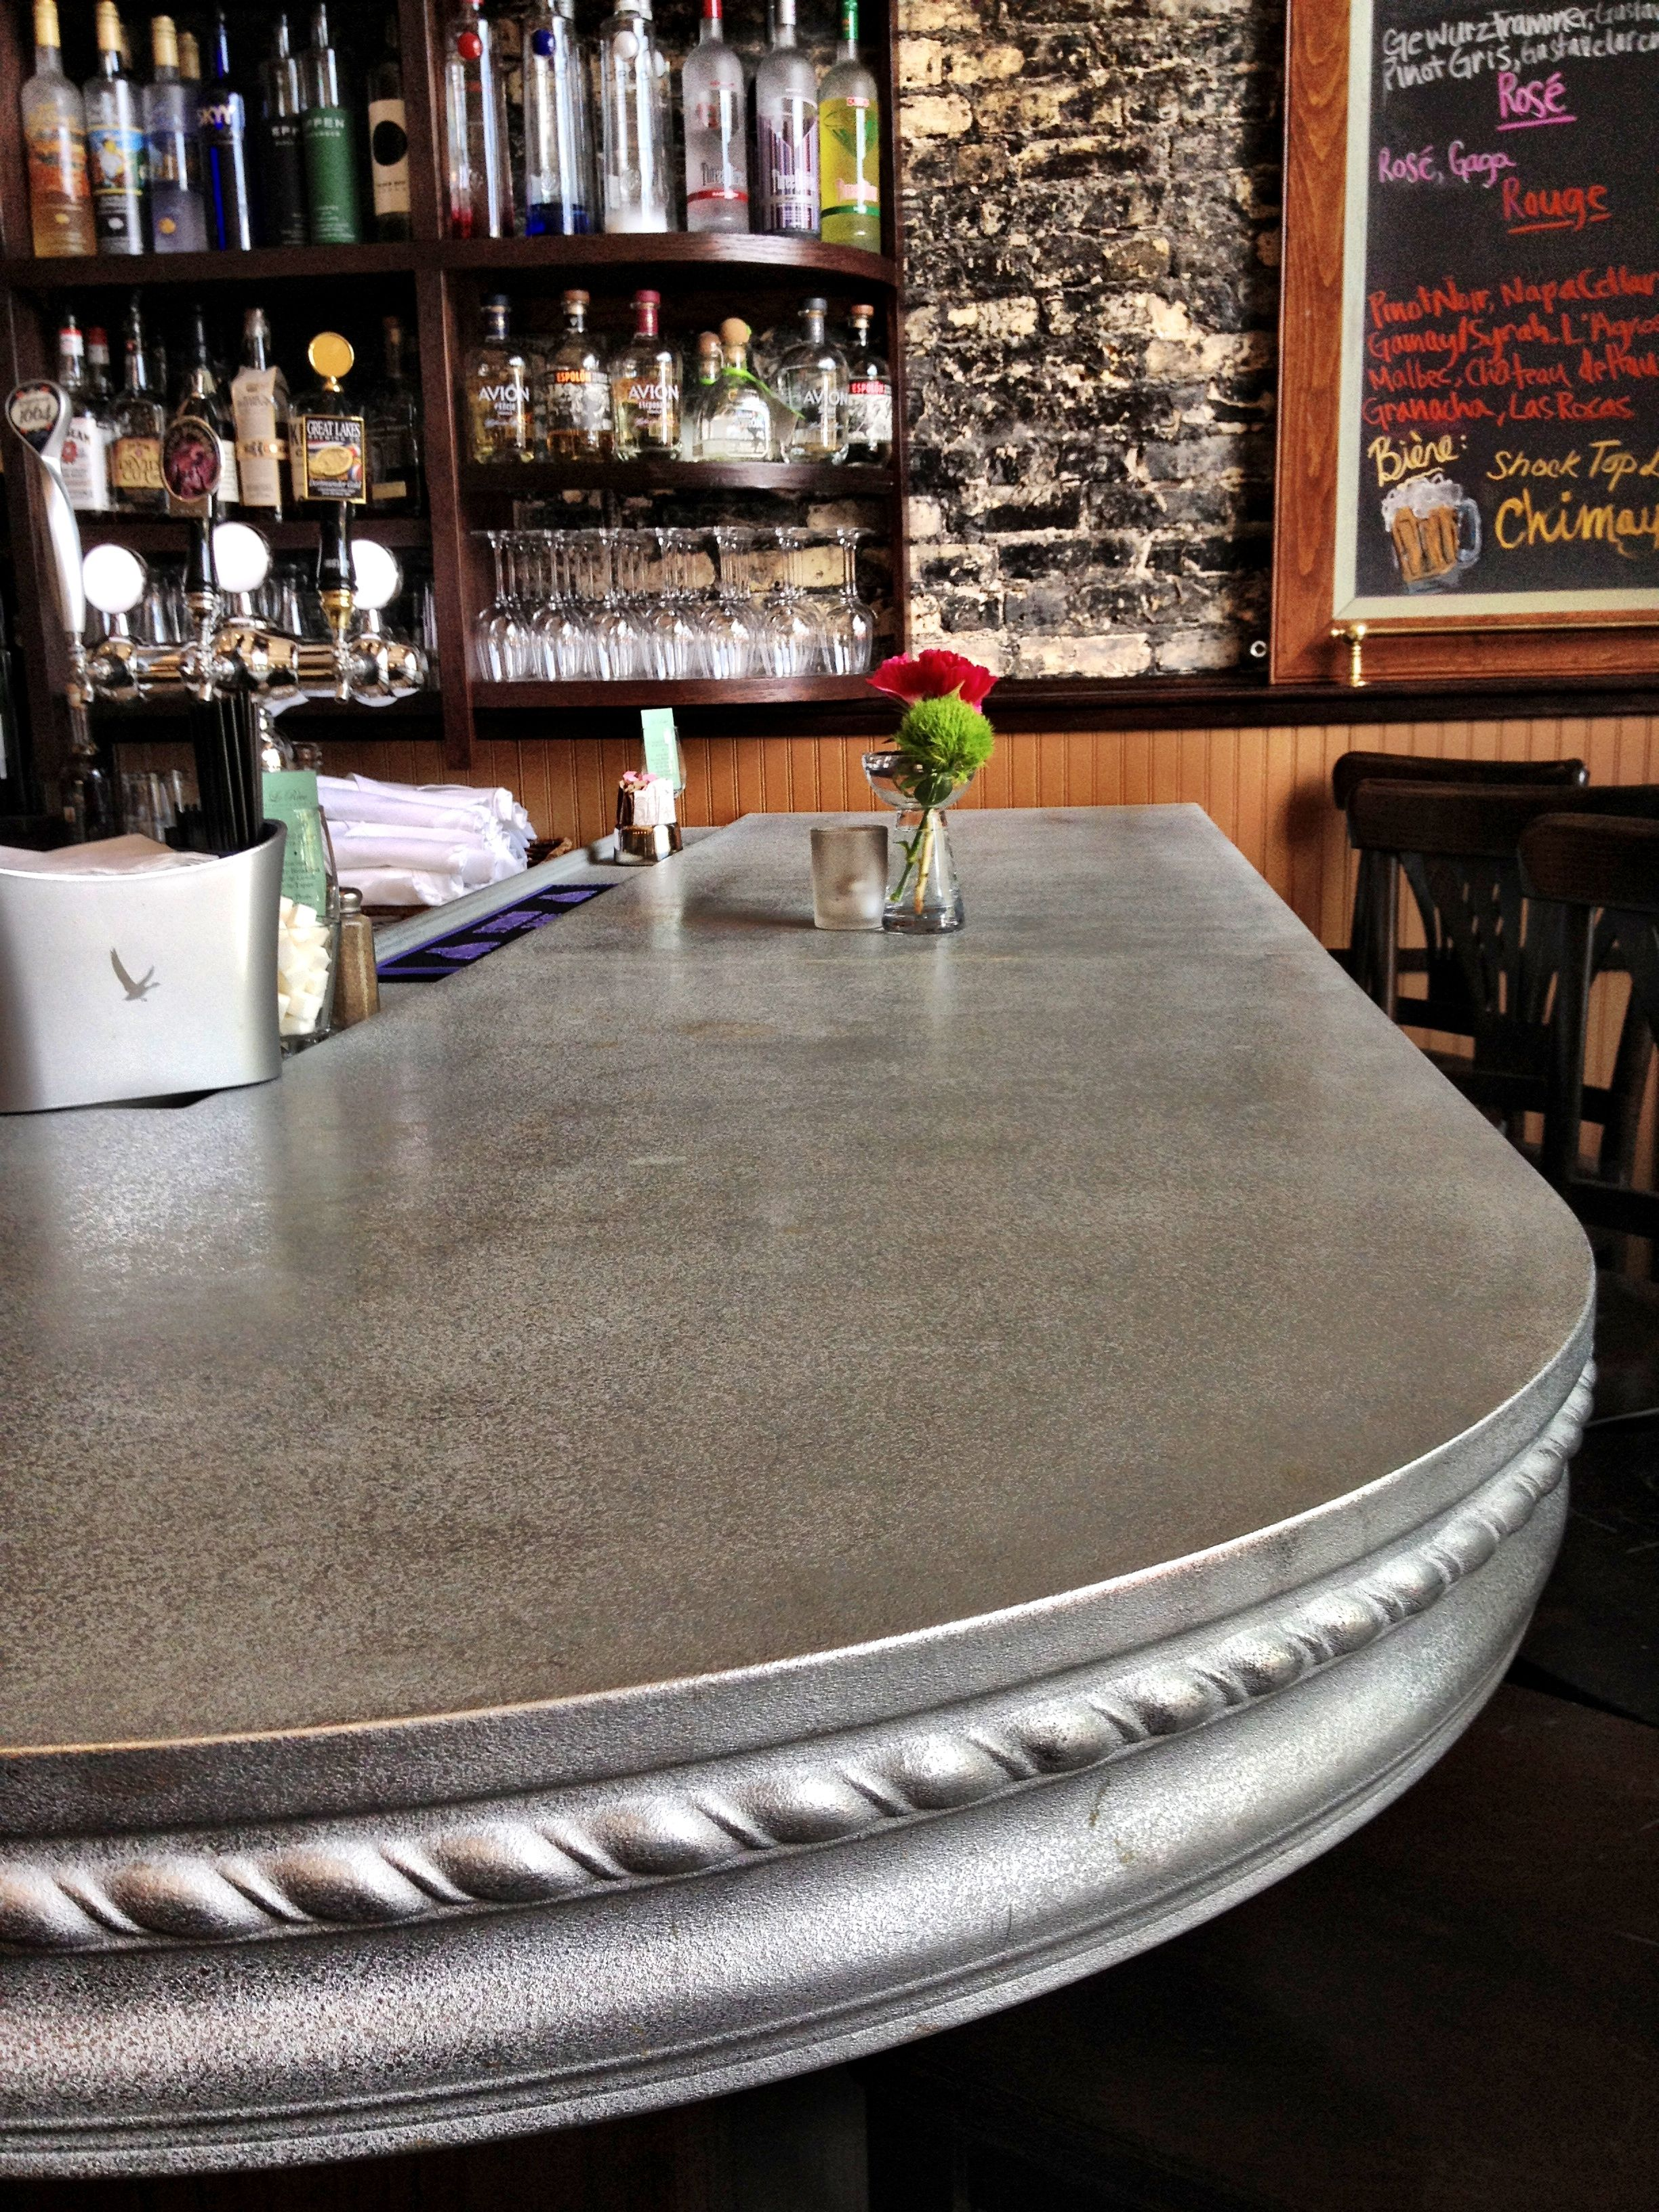 Our Curved Pewter Bar Top Design For Le Rêve Patisserie Cafe Zinc Countertopsbar Topsmetal